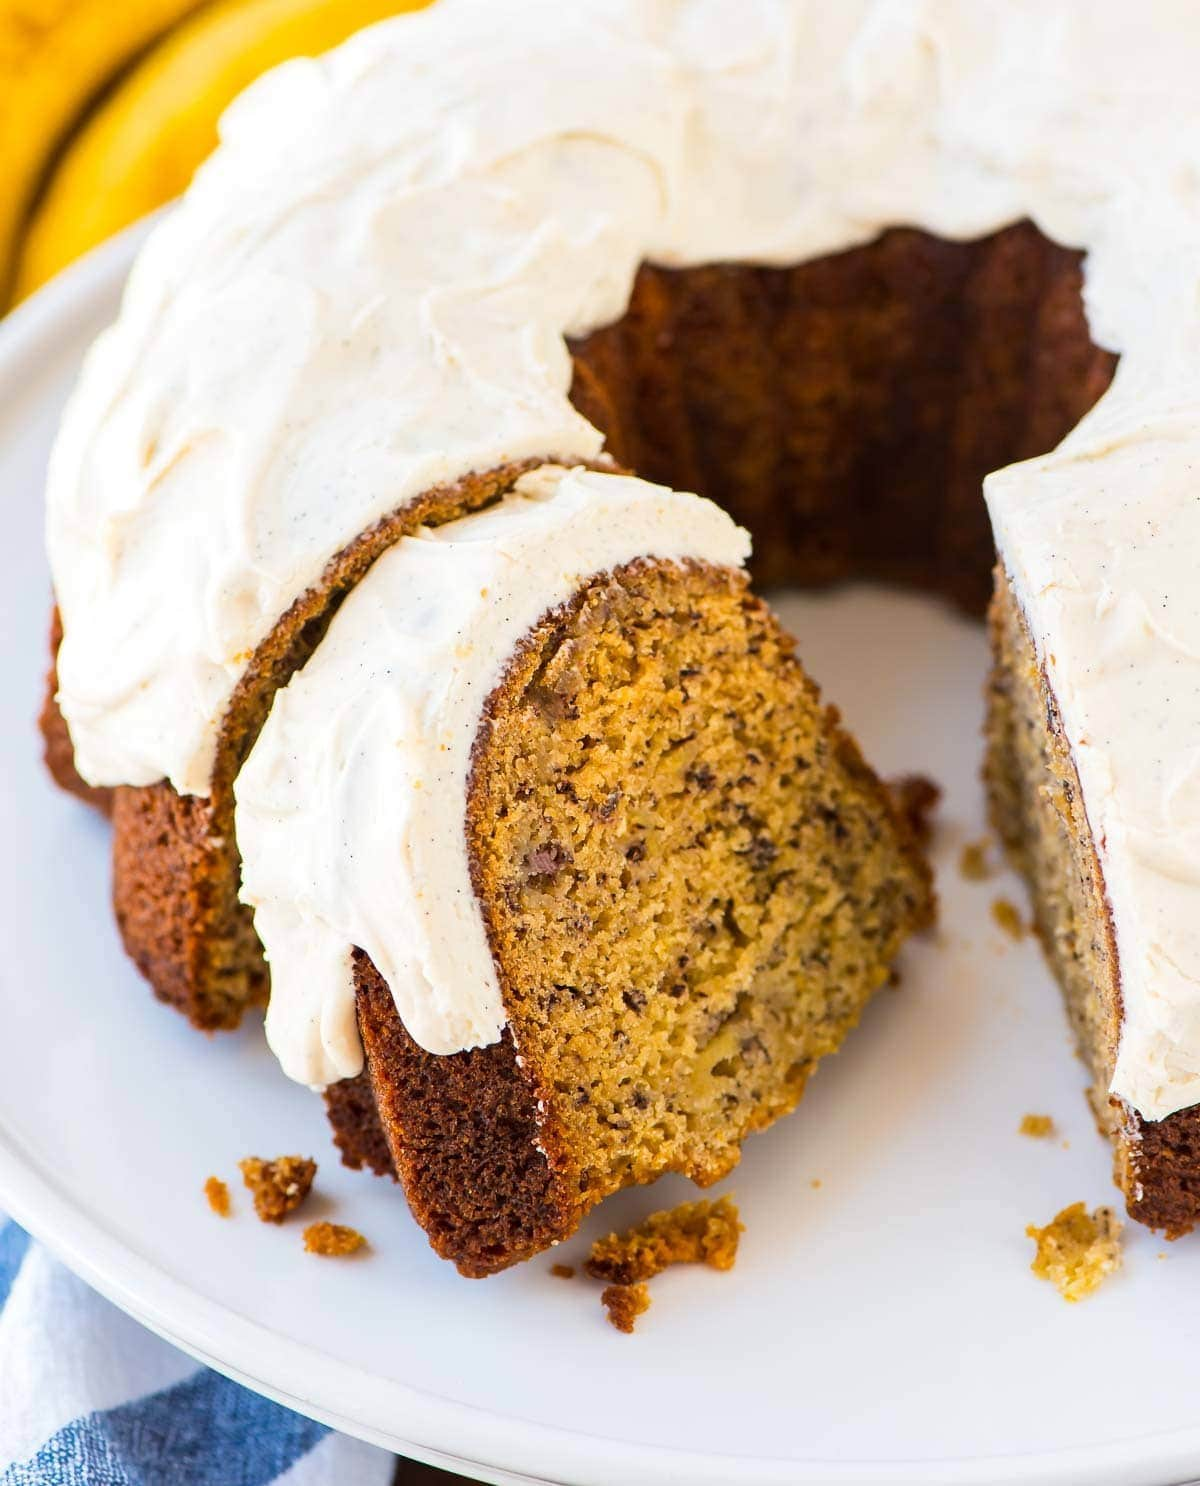 Best Banana Bundt Cake Moist And Flavorful Wellplated Com